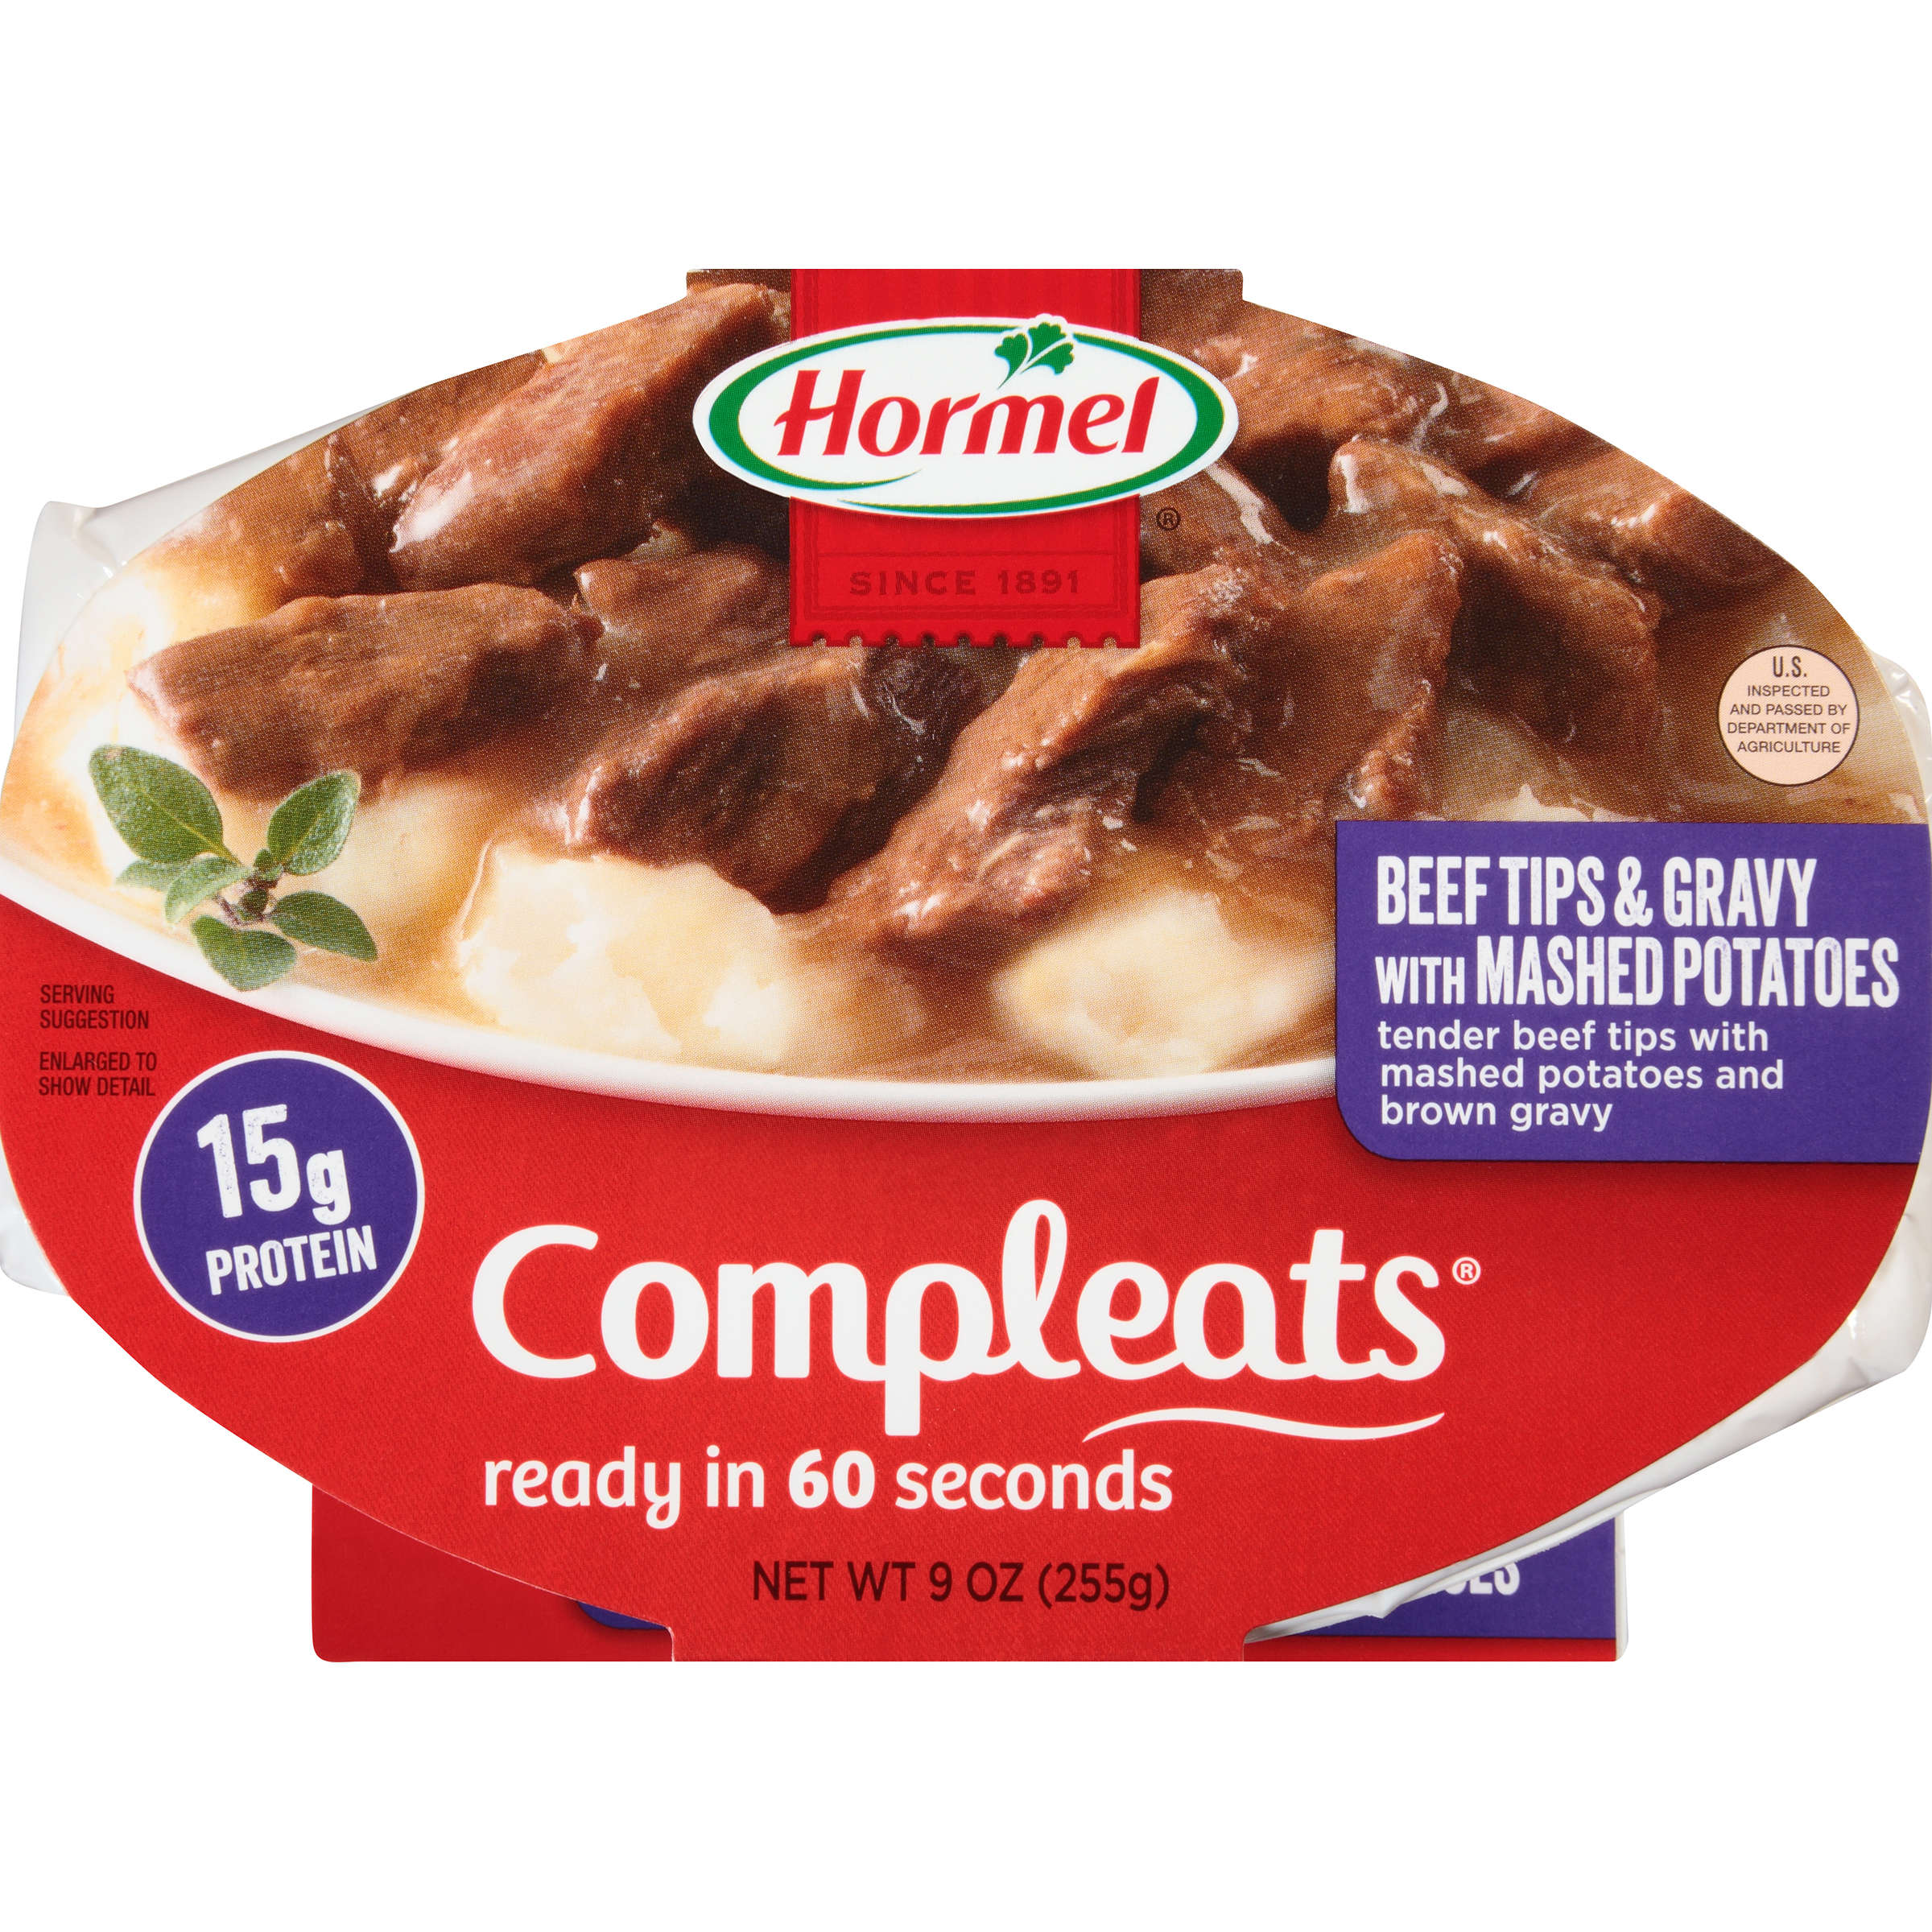 HORMEL COMPLEATS Beef Tips & Gravy with Mashed Potatoes 9 oz. Container by Hormel